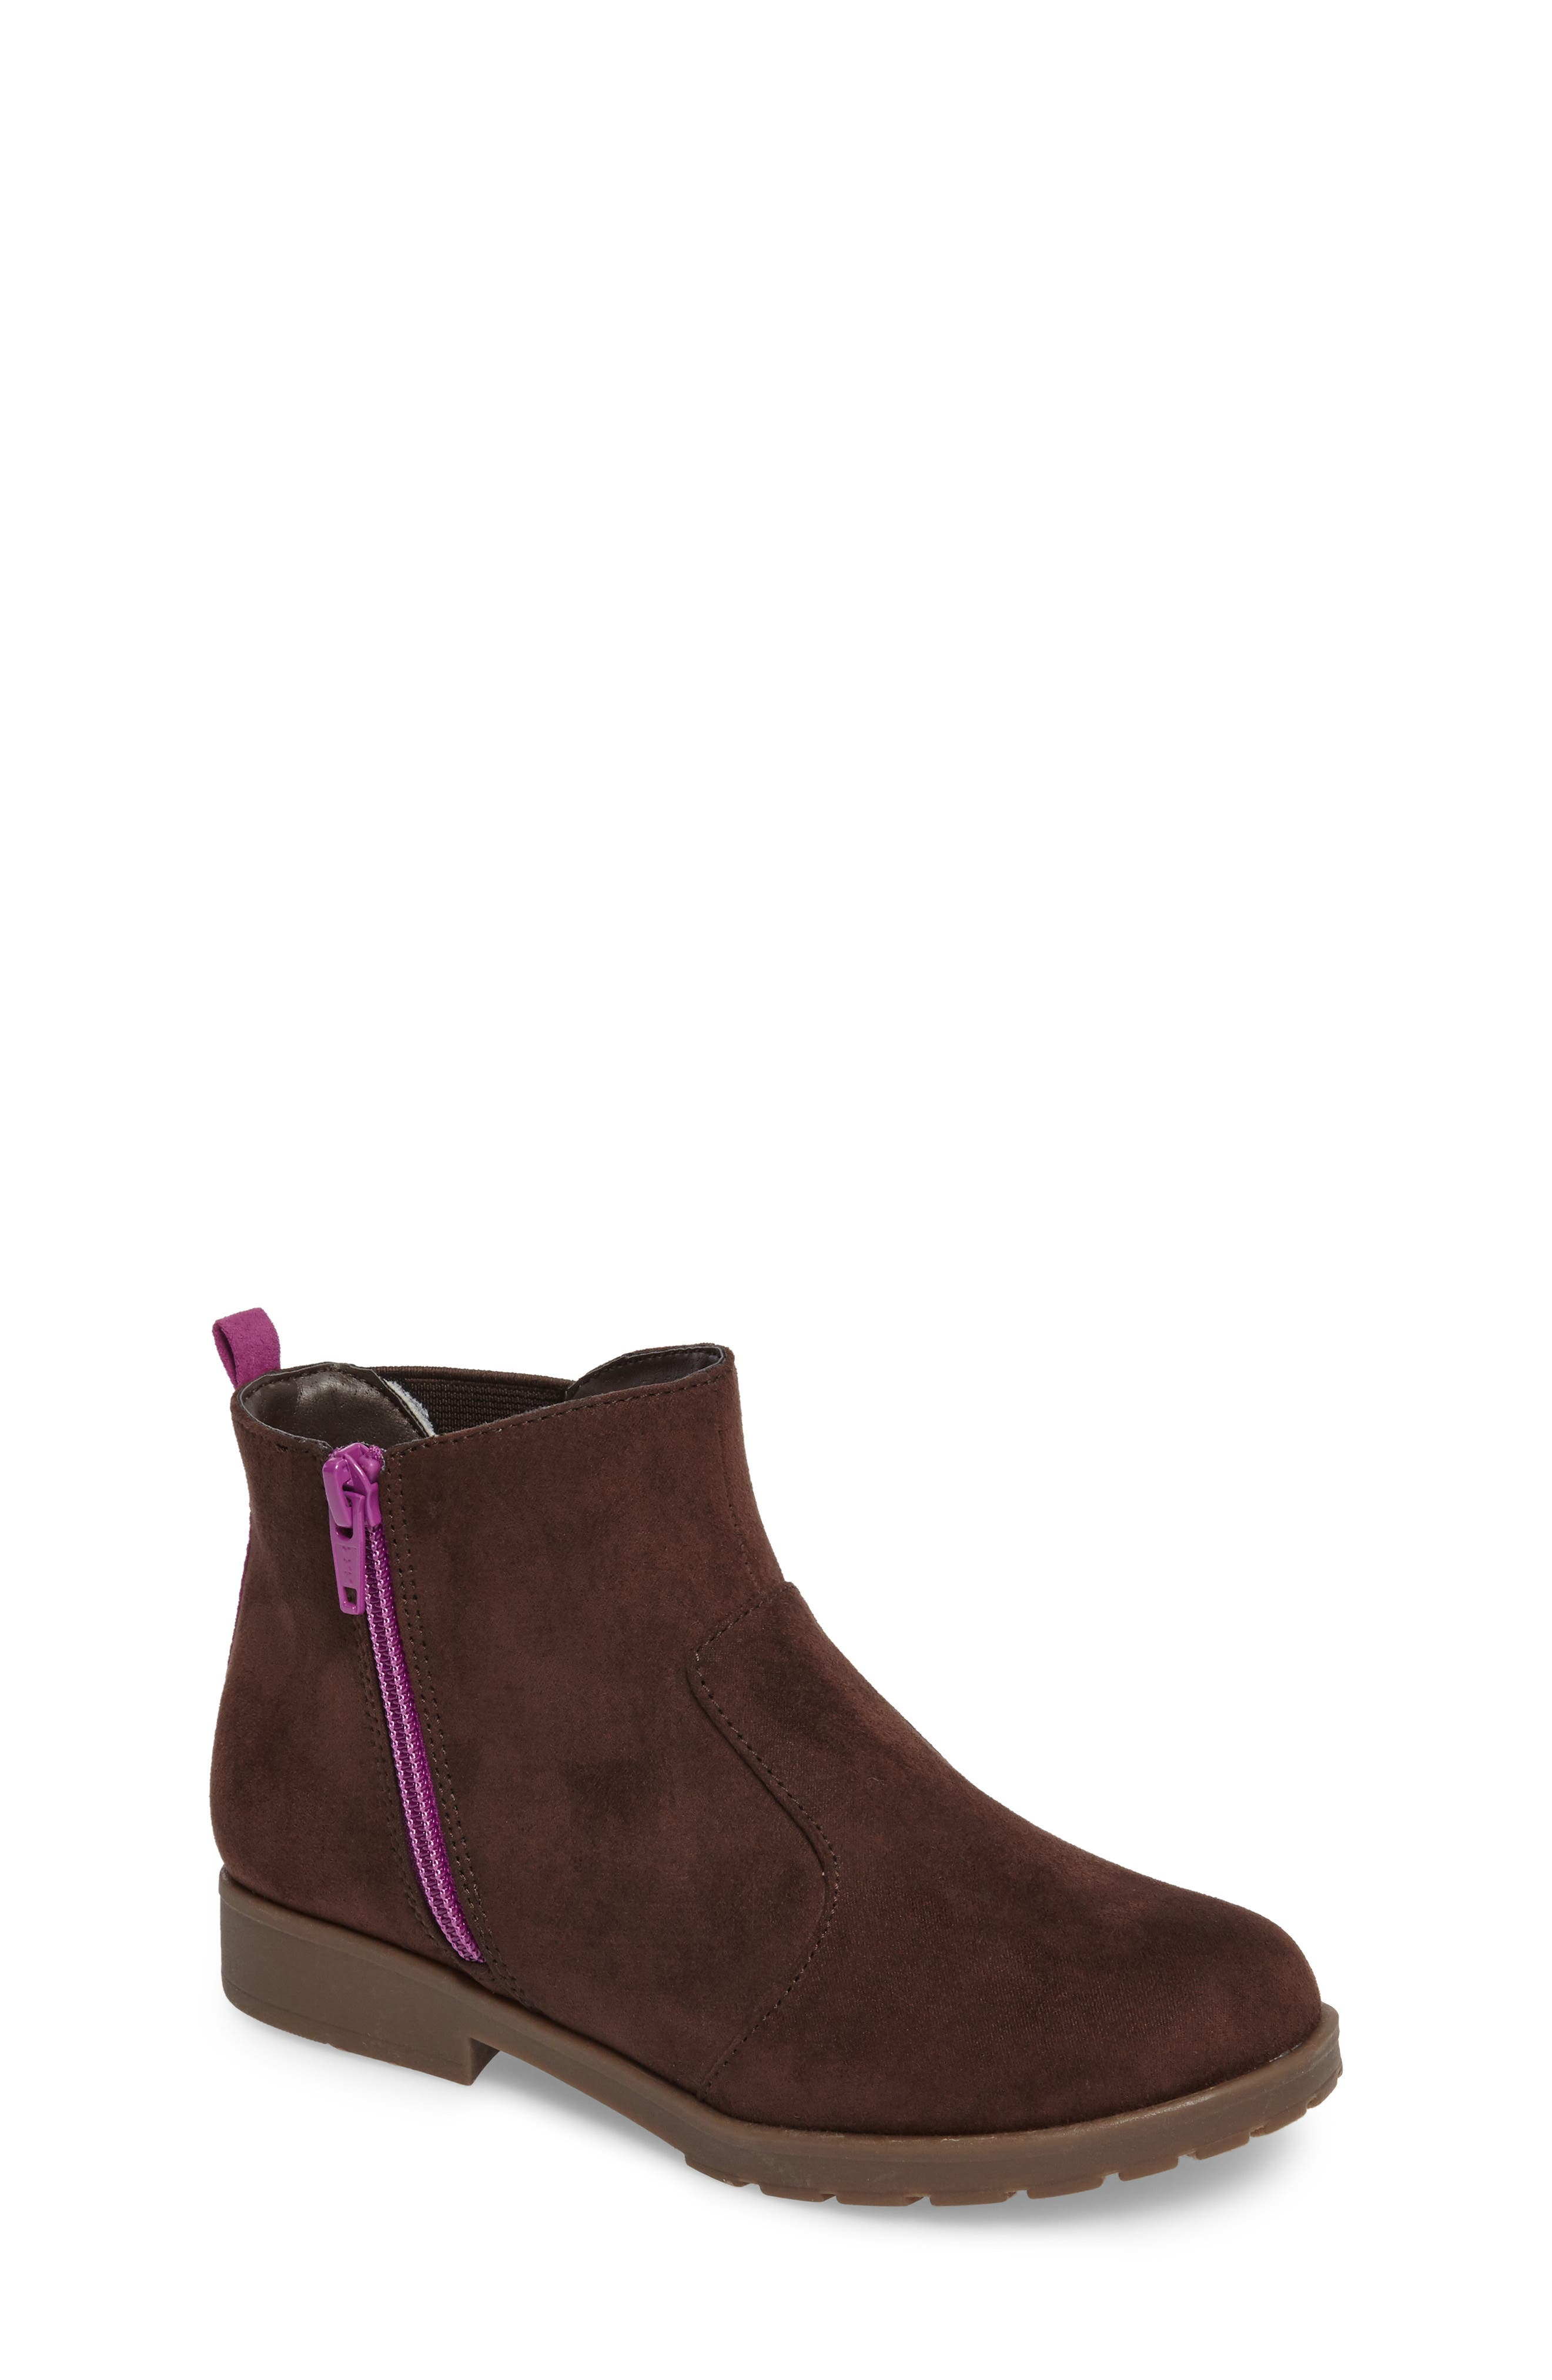 Lucy Zip Bootie,                         Main,                         color, Chocolate